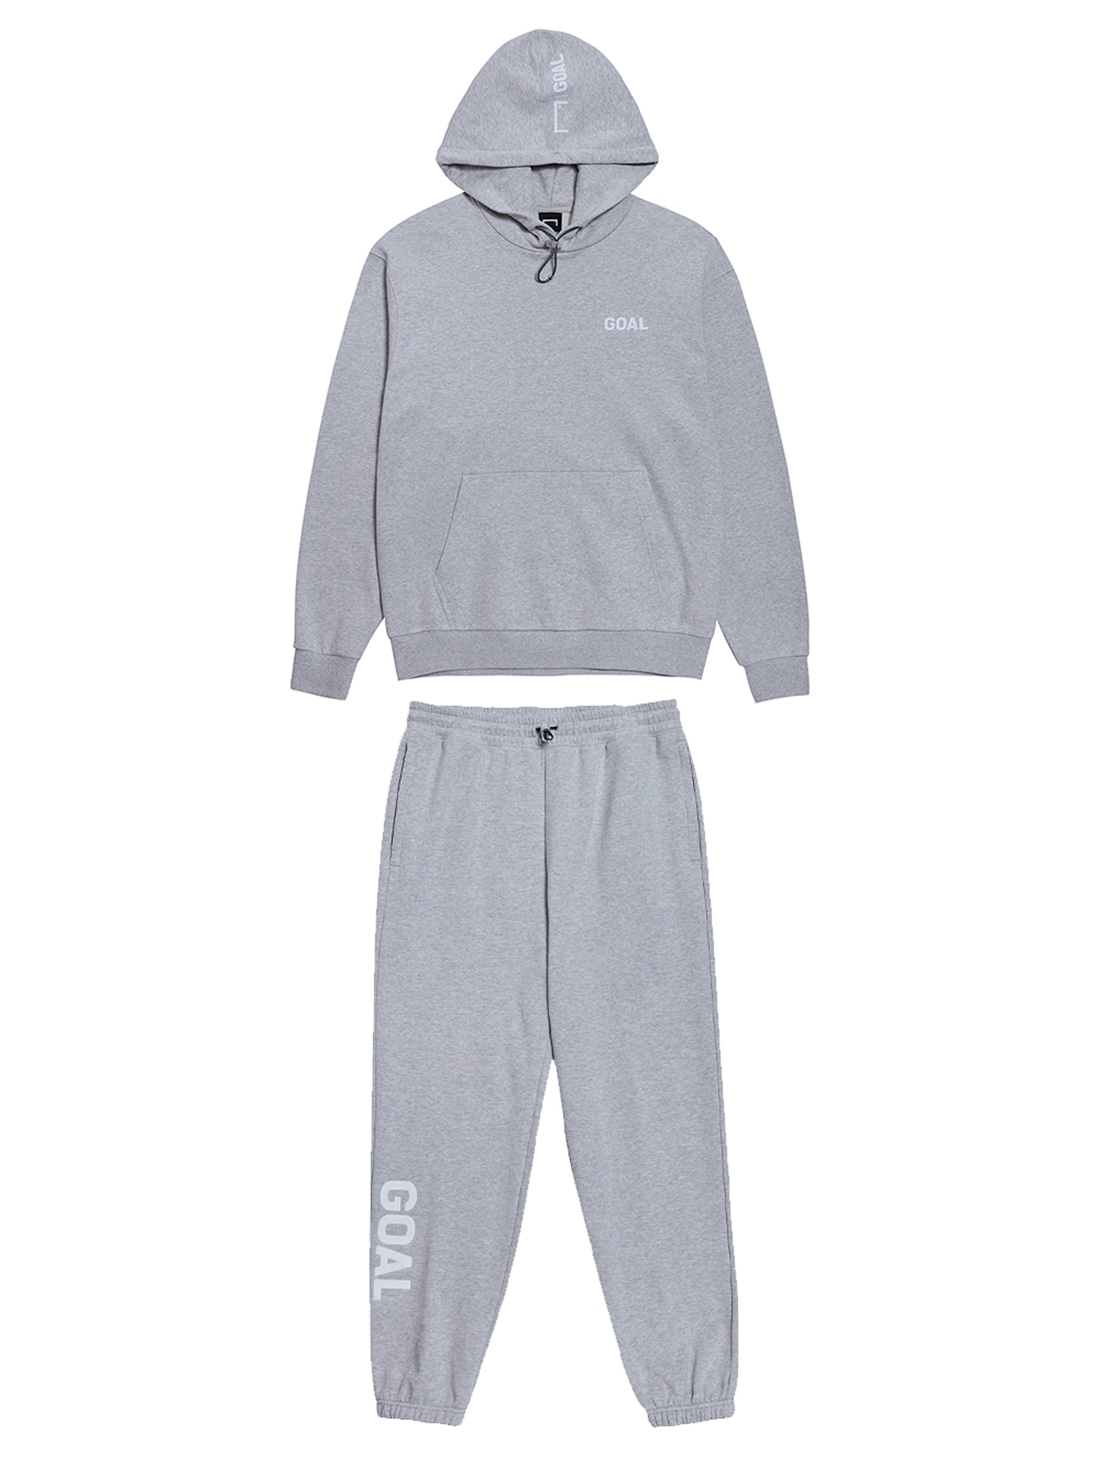 GOALSTUDIO [10% OFF] FLOCKING HOODIE & PANTS SET - GREY